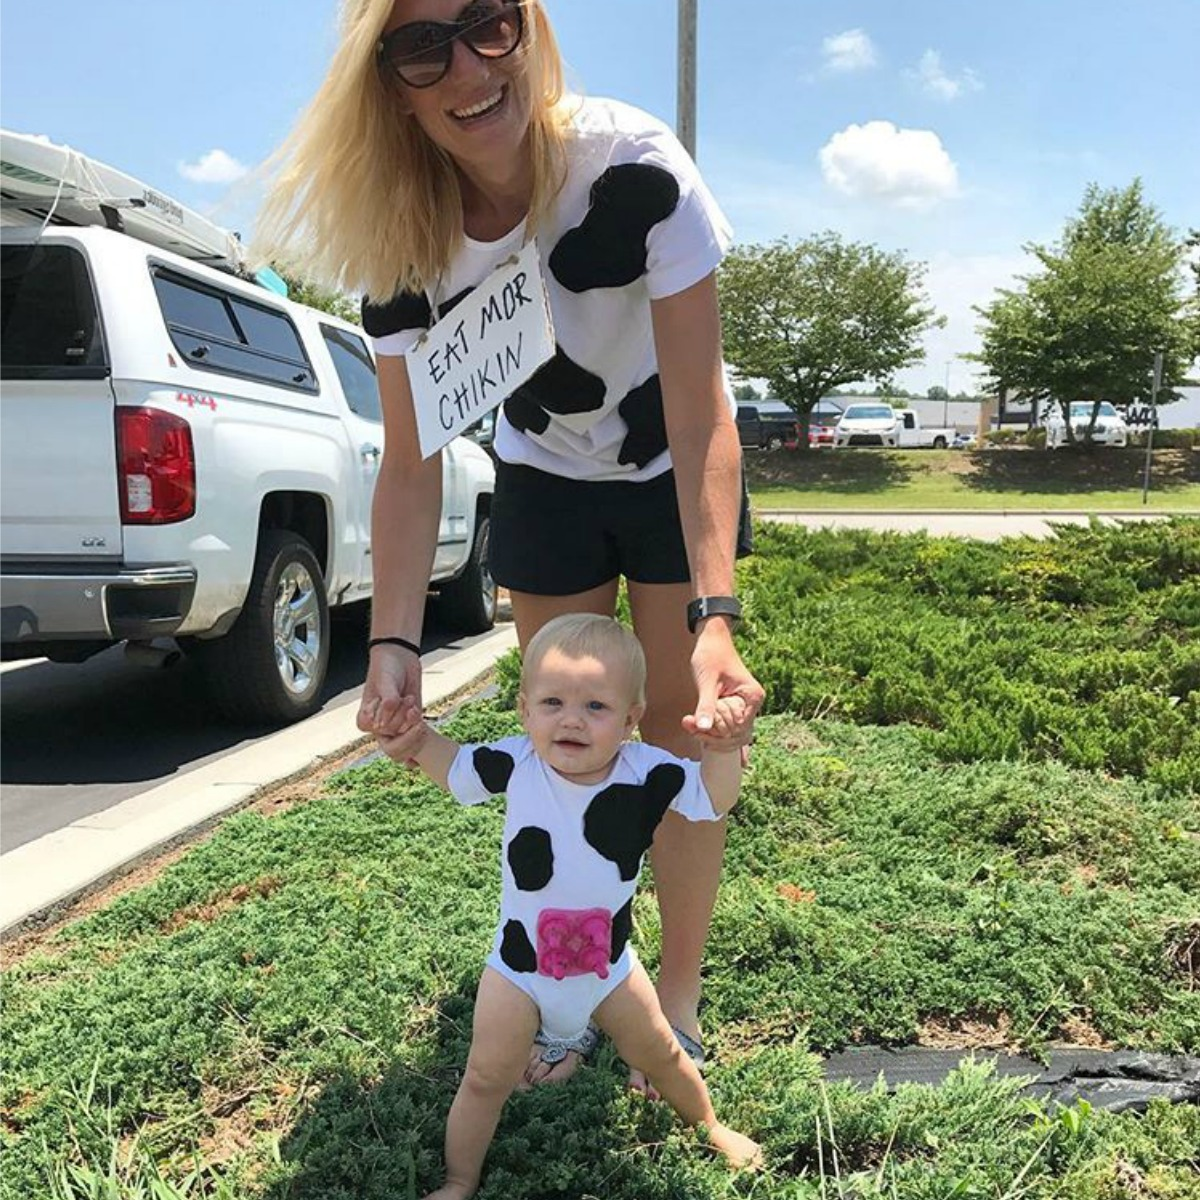 Mom and baby dressed as cows with white shirts covered in black felt spots